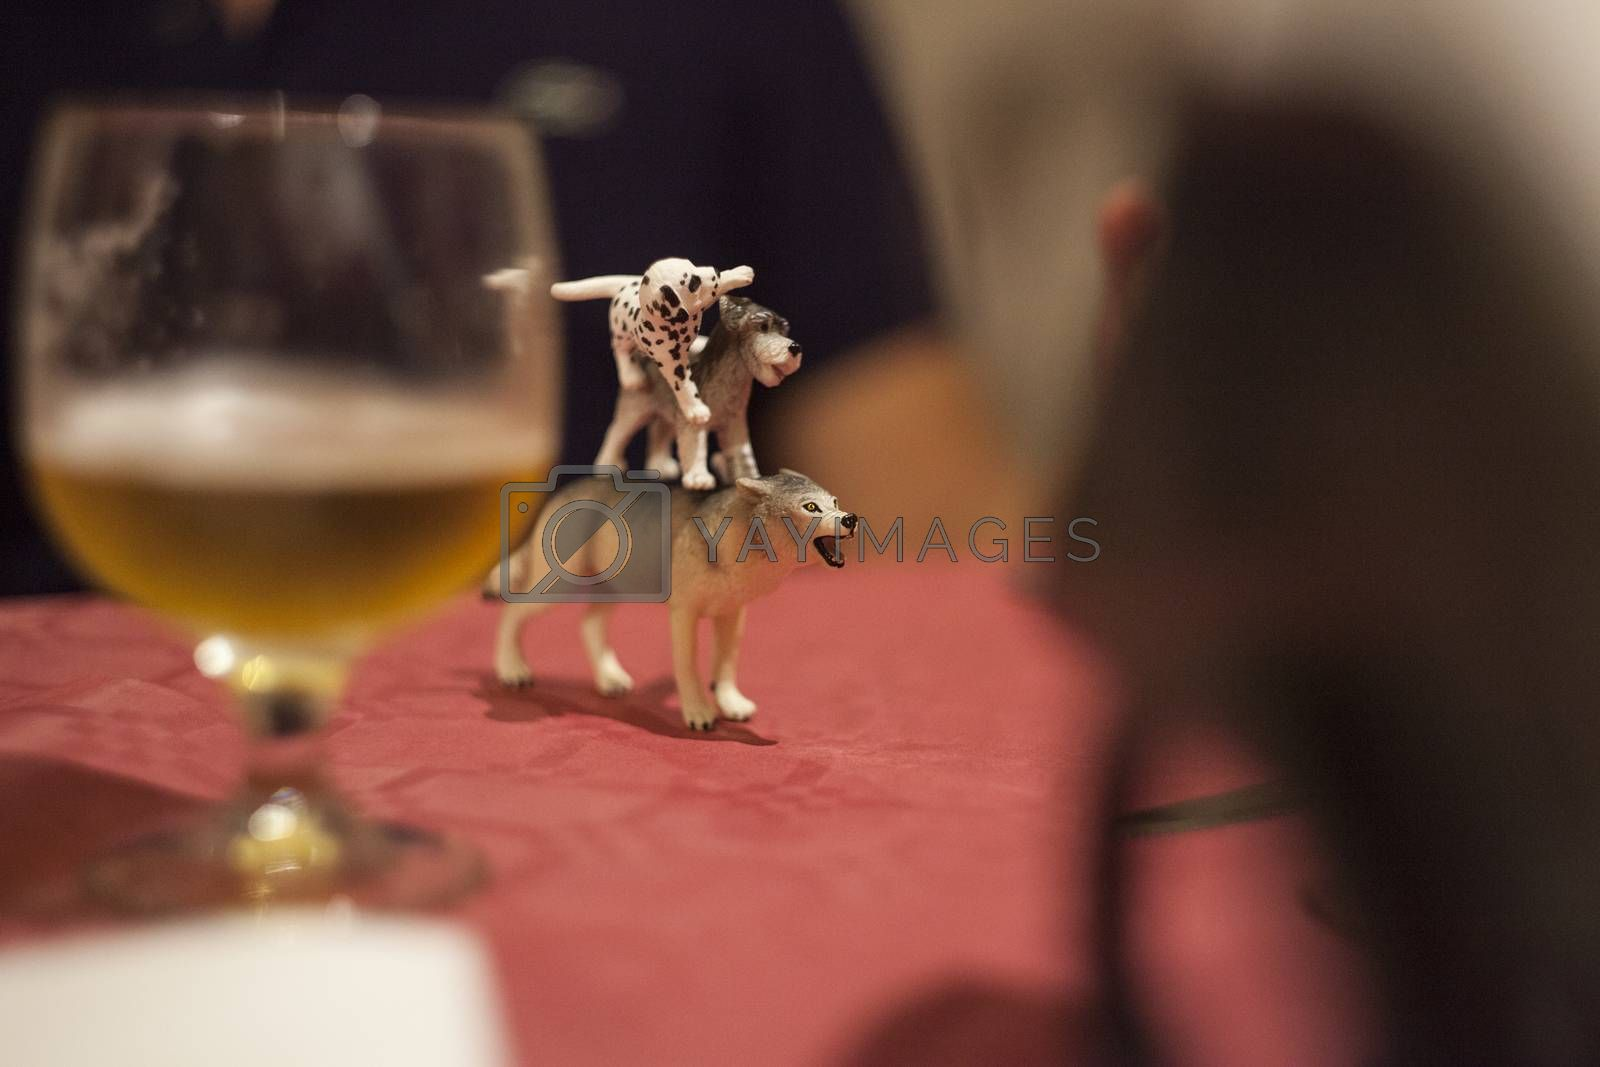 Toy animals posed in a table